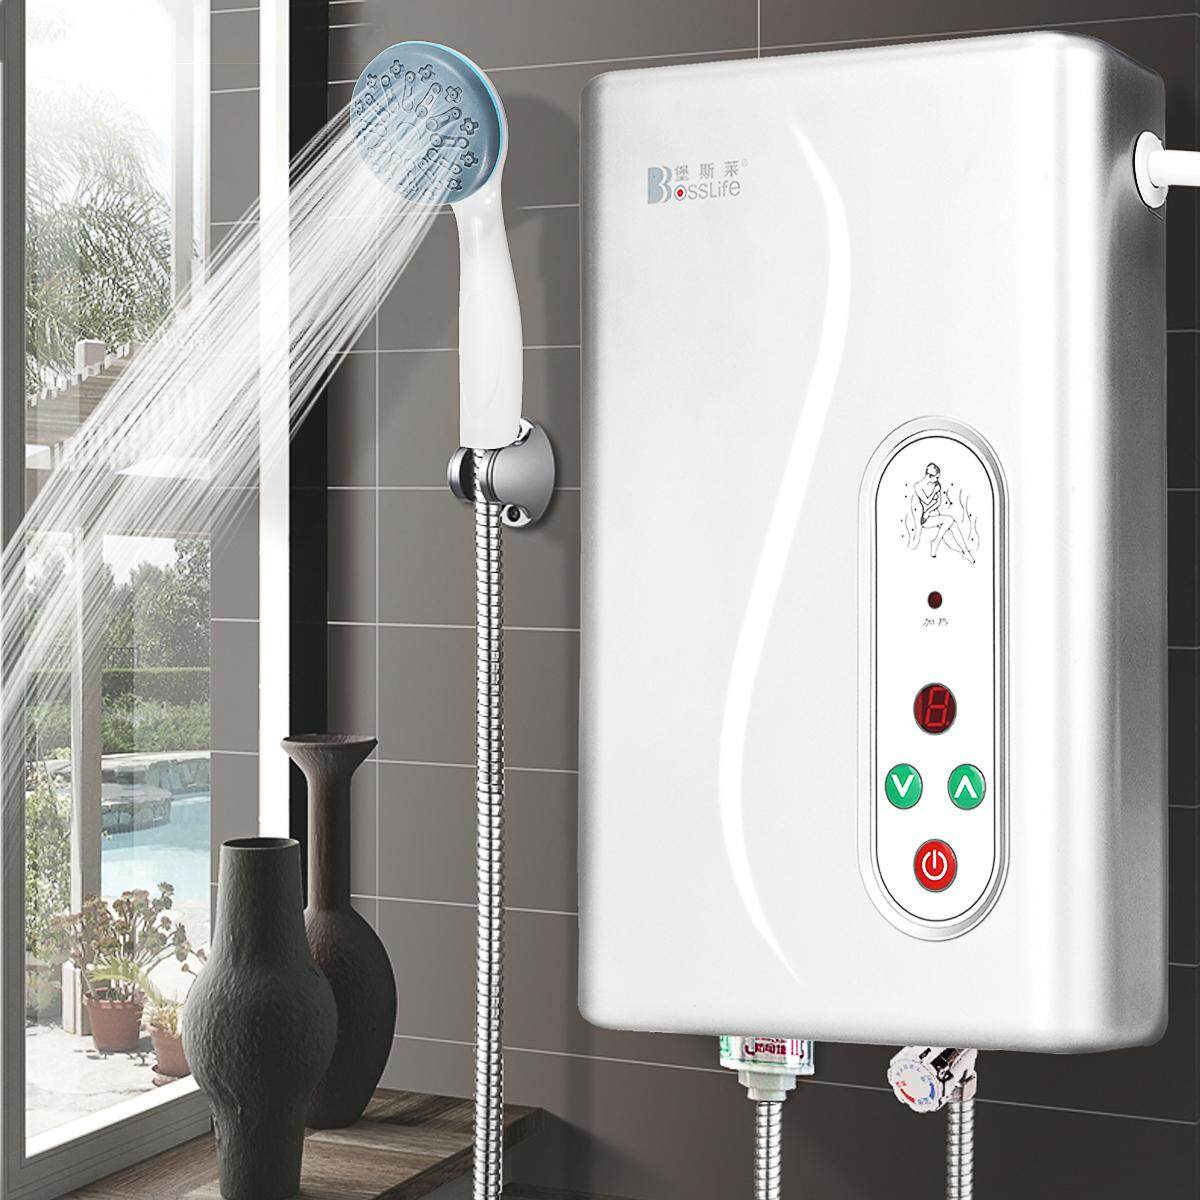 Water Heater For Sale Electric Prices Brands Diy Electrical Wiring Bathroom Free Shipping Flash Dealelectric Hot Instant Shower Panel System Kit